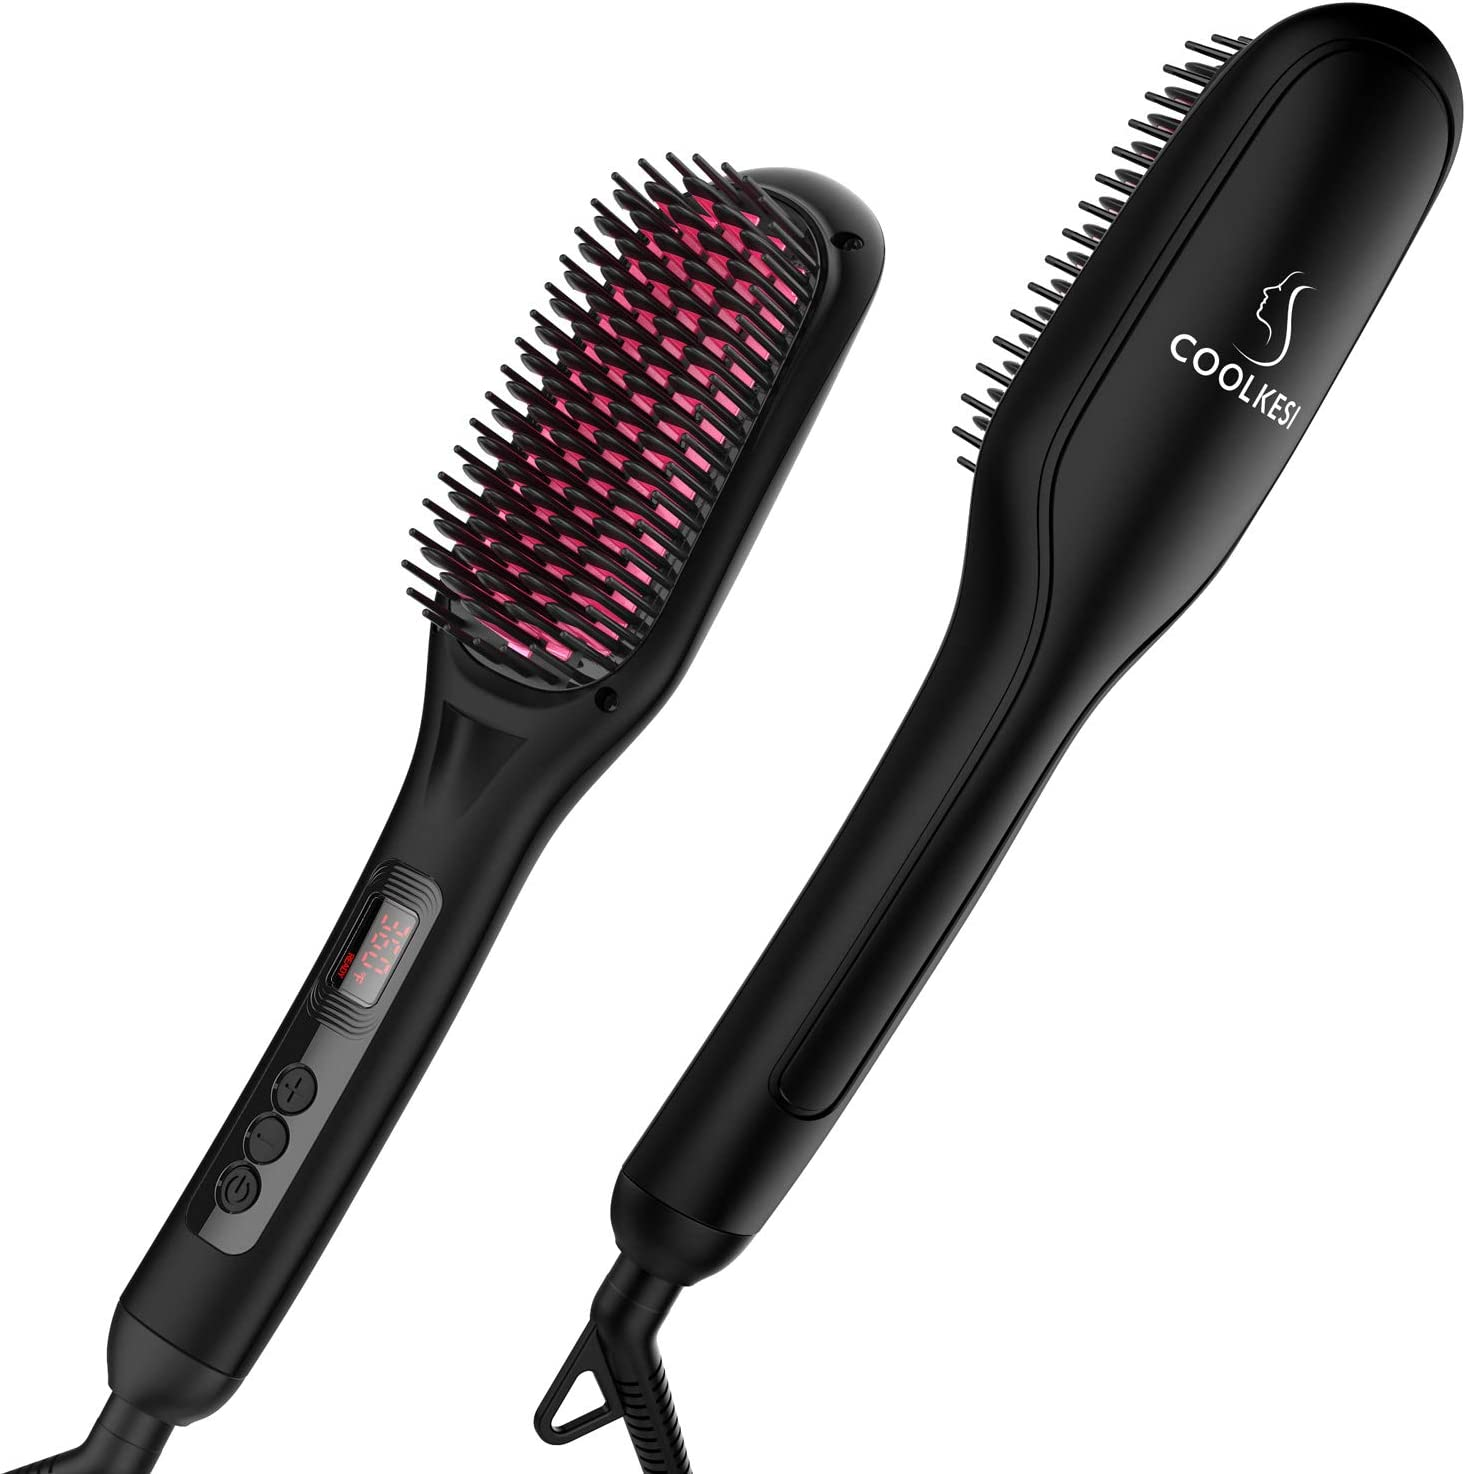 Ionic Hair Straightener Brush by COOLKESI, 30s Fast MCH Ceramic Heating Hair Straightening Brush with Anti Scald Feature, Auto Off & Dual Voltage,